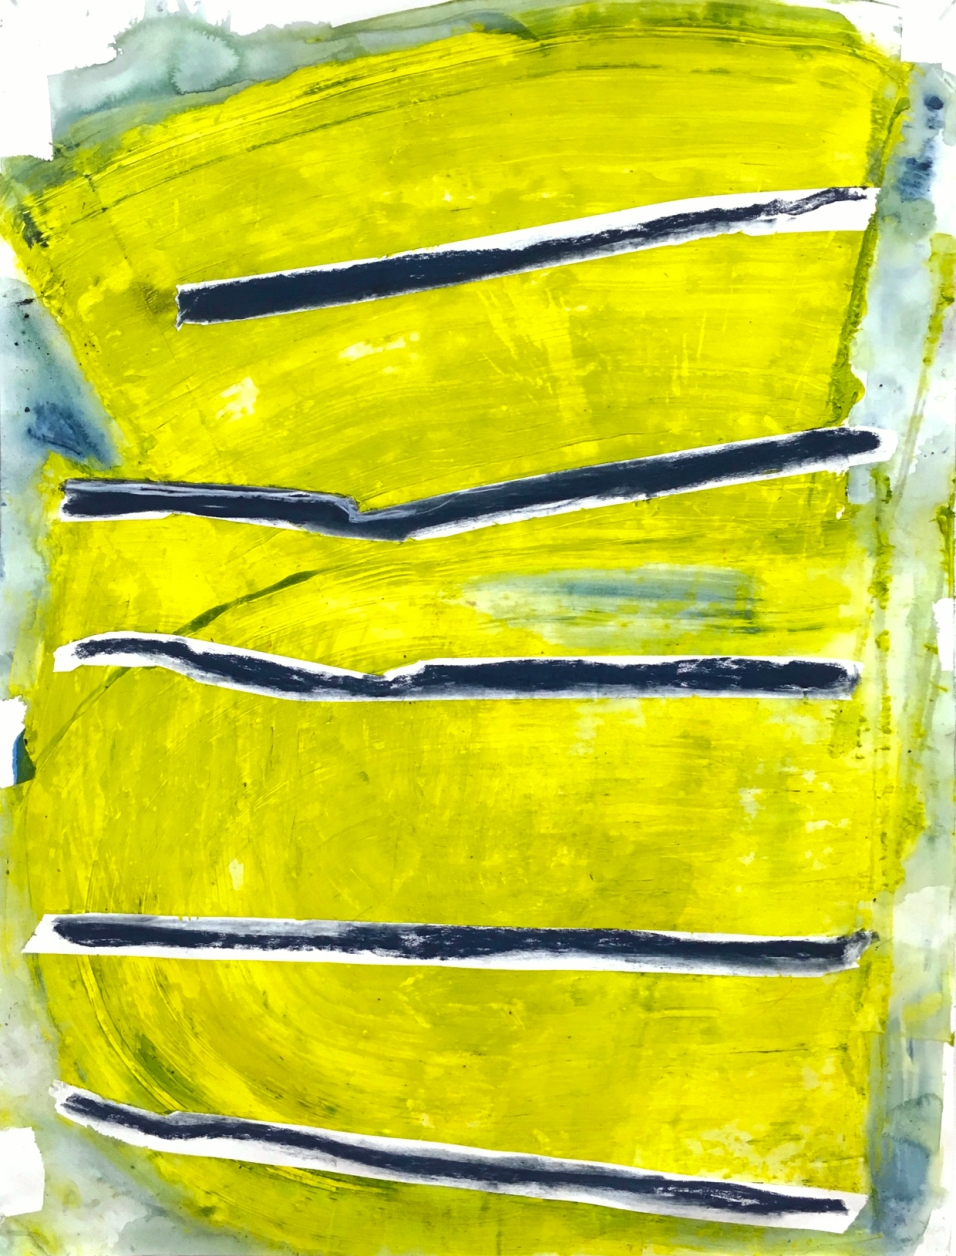 (SOLD) Bars Against Chartreuse - acrylic paint, pastel, and watercolor crayon on paper - 42x32 inches